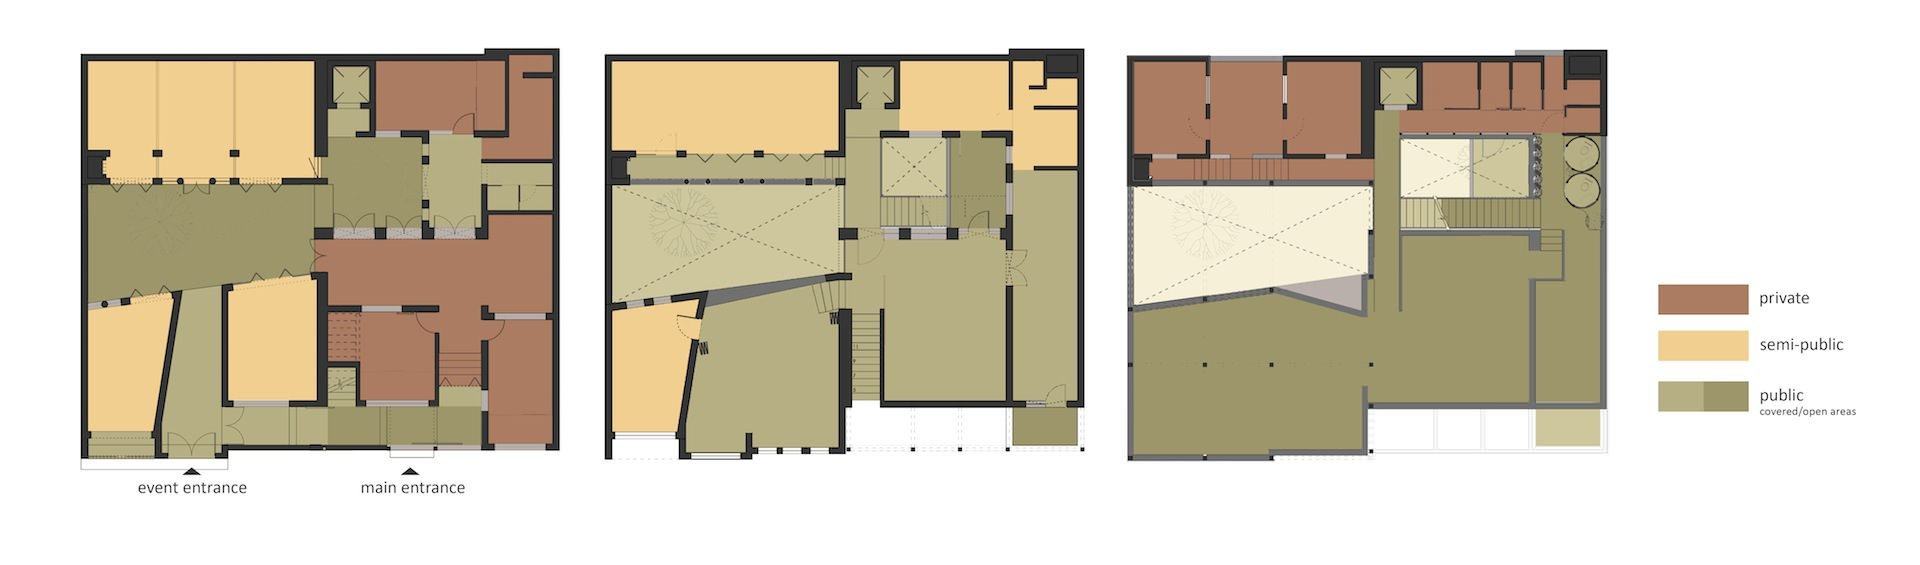 Plans of the new building. (Image: Lotus Design)